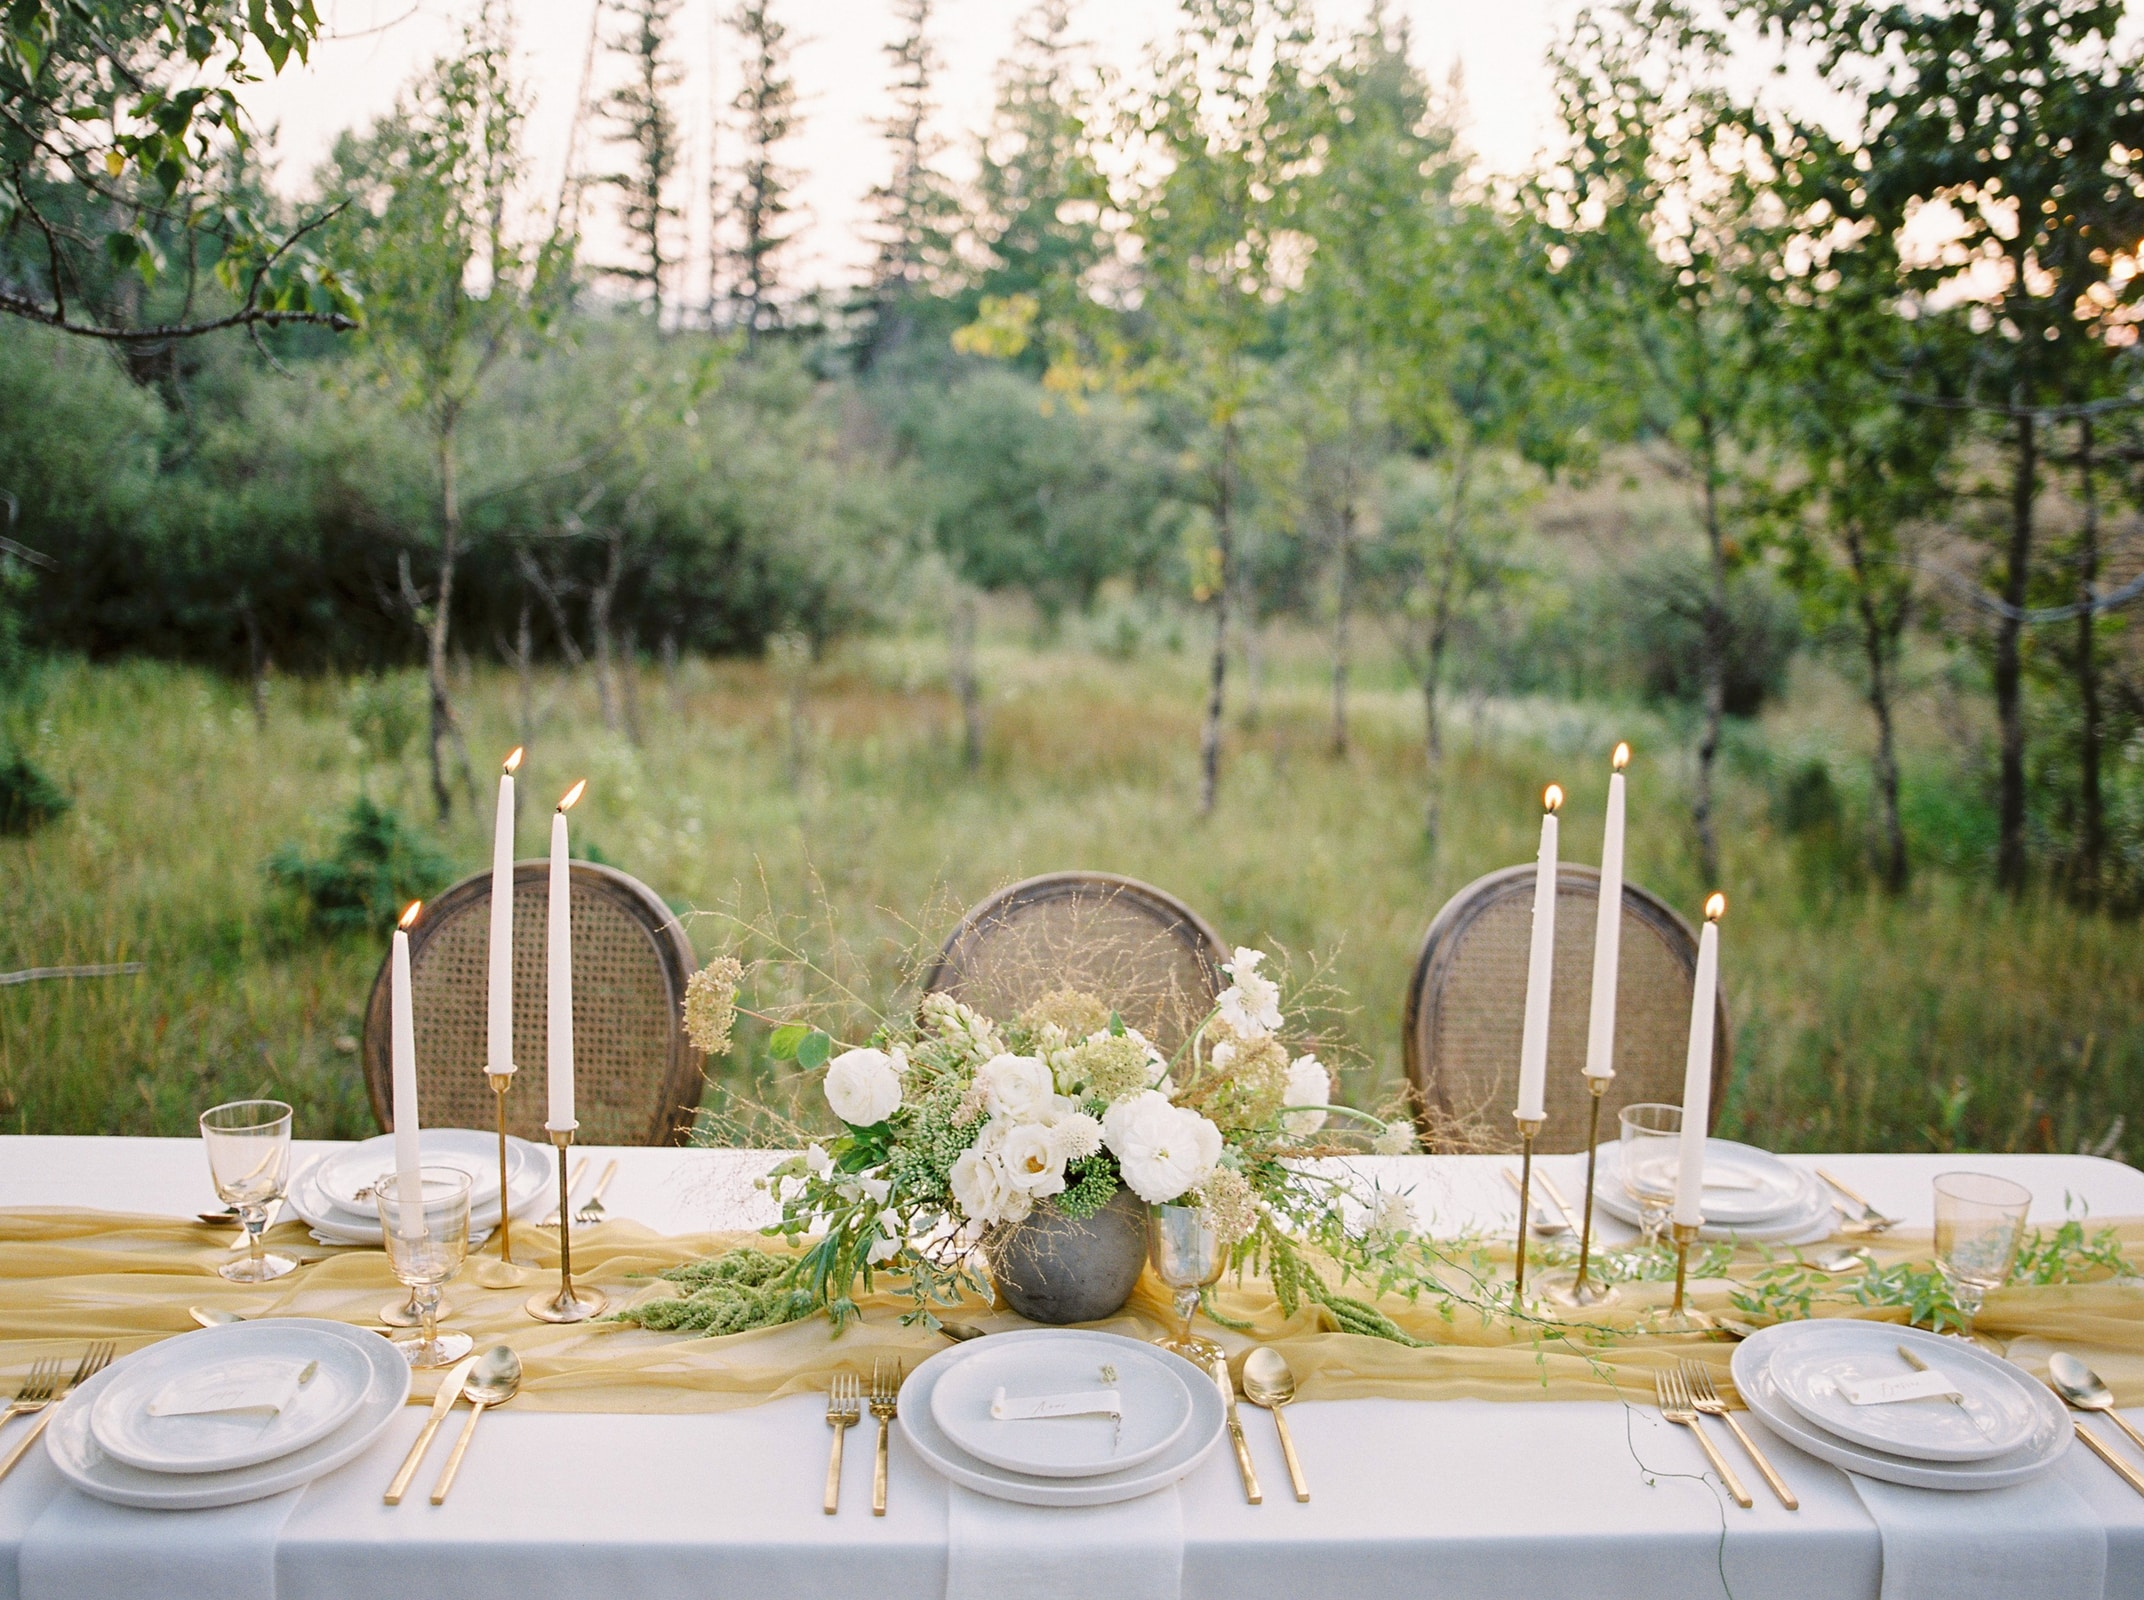 Photos by Justine Milton  Inspired by the natural beauty of Kananaskis Country, this design collaboration was intended to reflect the beautiful setting with fine art sophistication. Thanks to Social + Co. wedding planning for trusting in us to execute their vision.